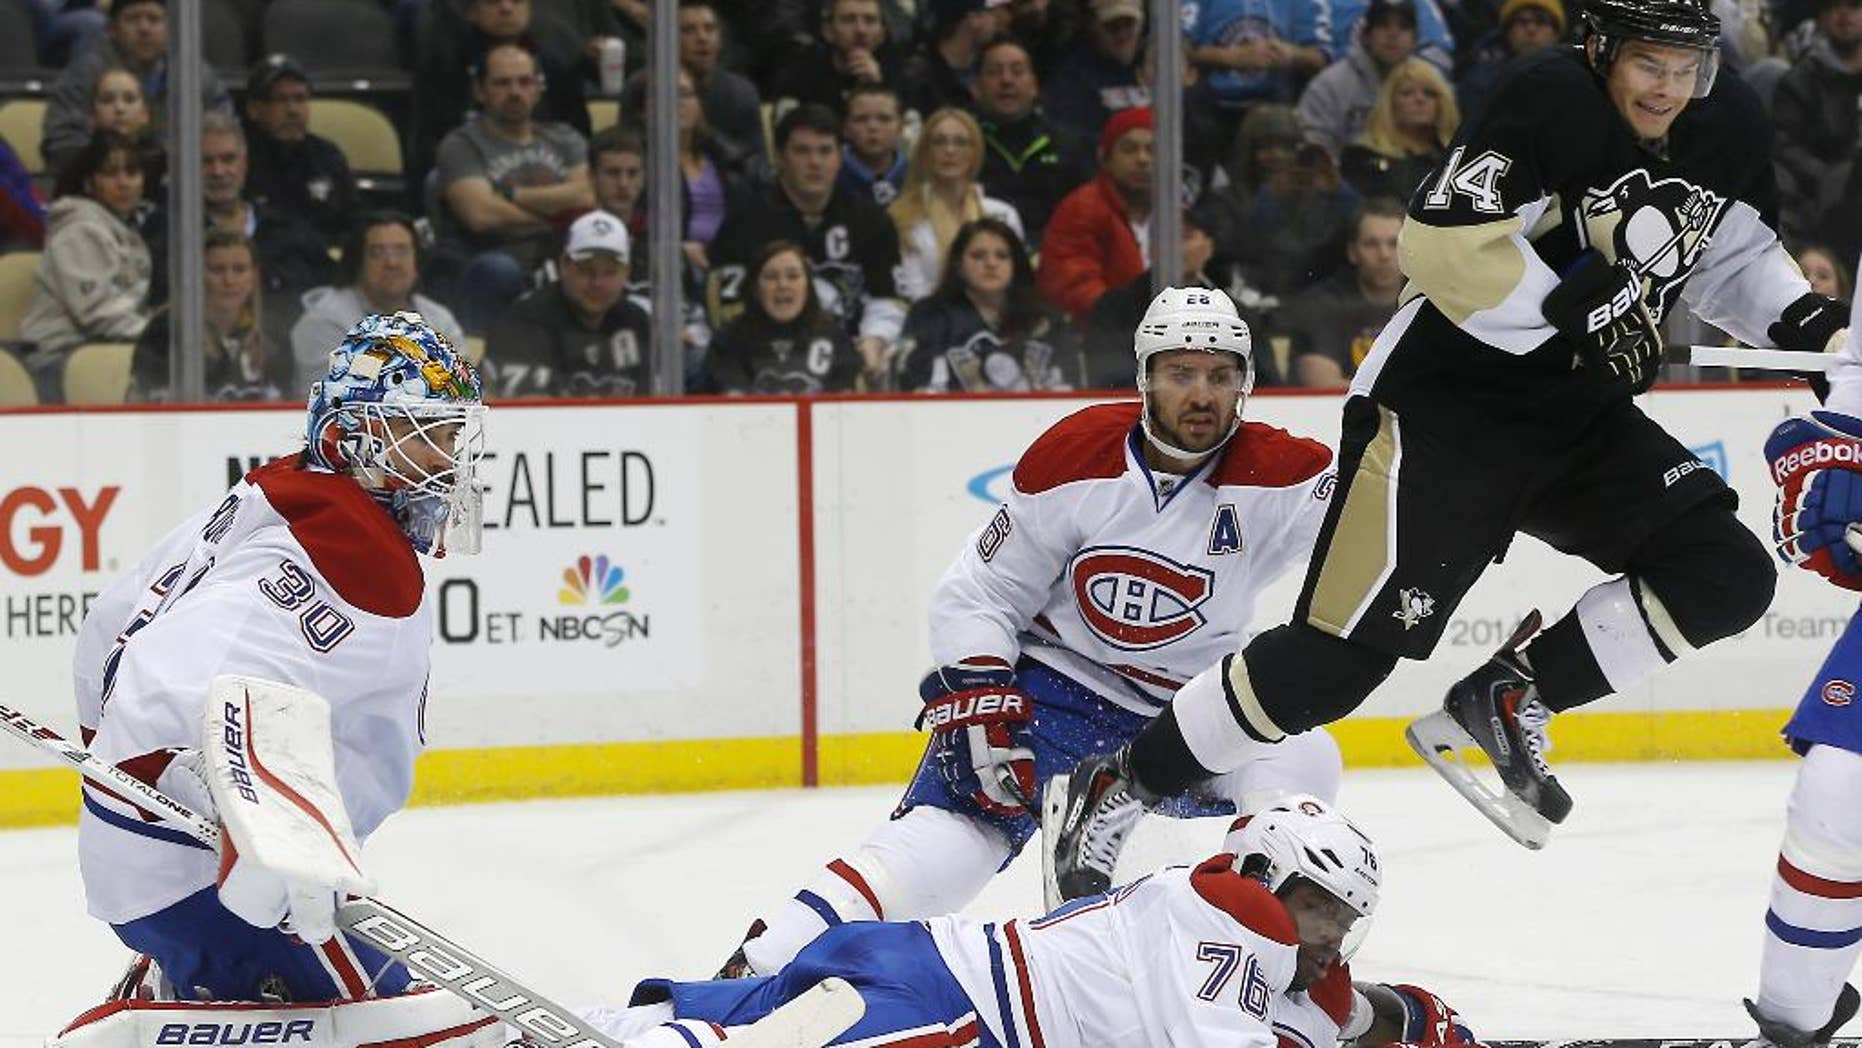 Pittsburgh Penguins' Chris Kunitz (14) hops over Montreal Canadiens' P.K. Subban (76) as he comes through the goal crease in front of goalie Peter Budaj (30), of Slovakia, during the second period of an NHL hockey game, Thursday, Feb. 27, 2014 in Pittsburgh. (AP Photo/Keith Srakocic)